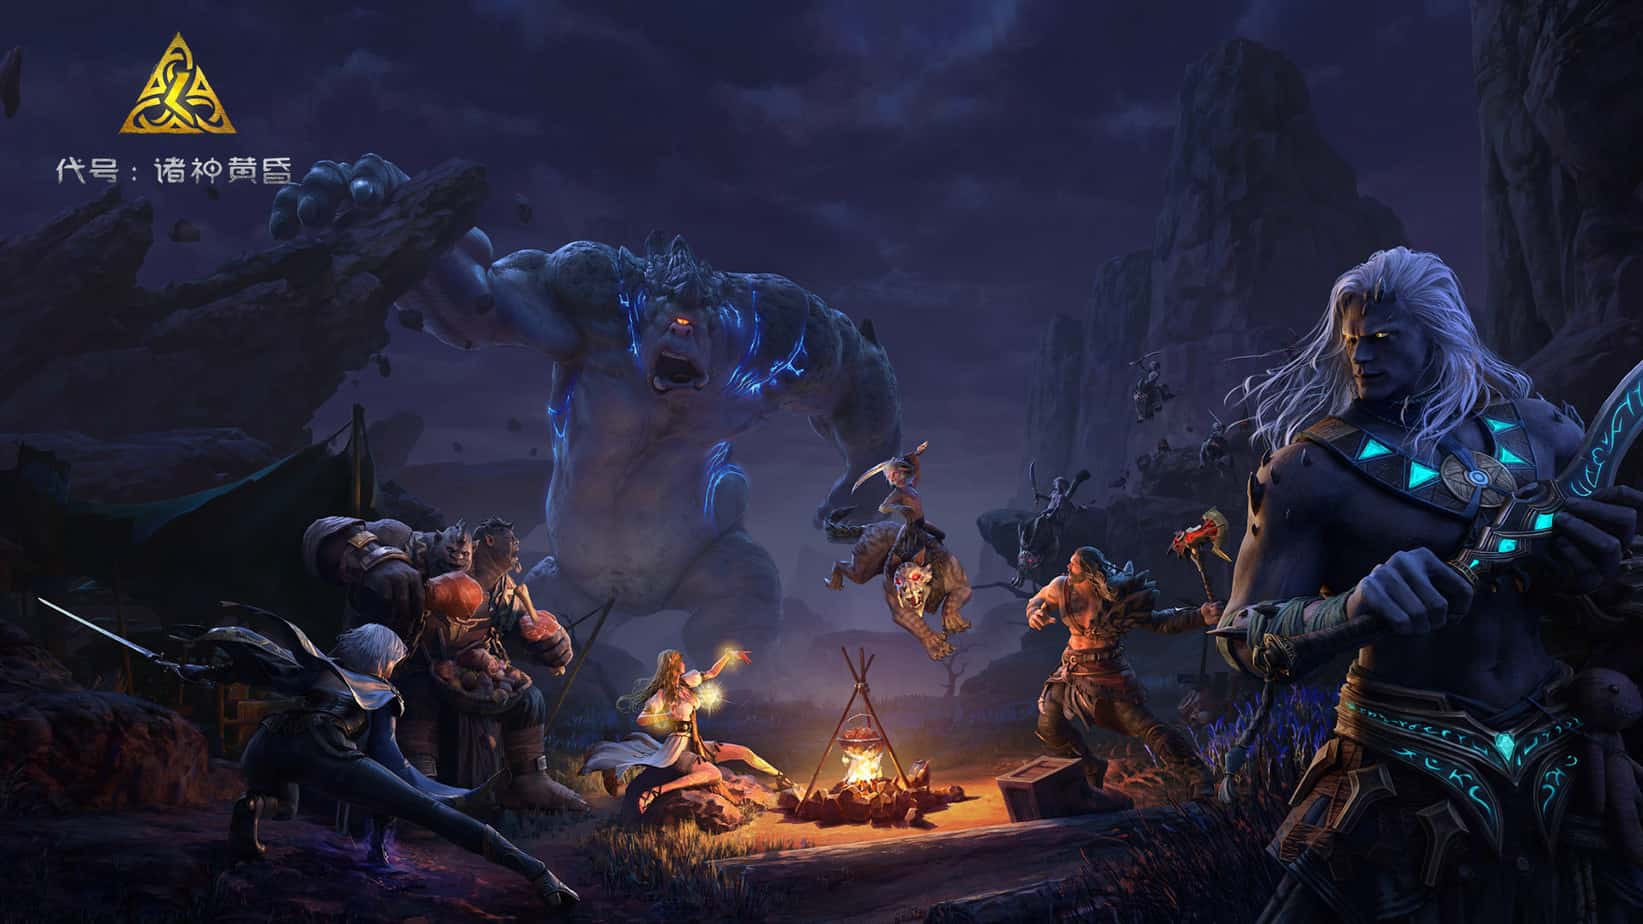 NetEase sviluppa un'incredibile titolo: The Ragnarok